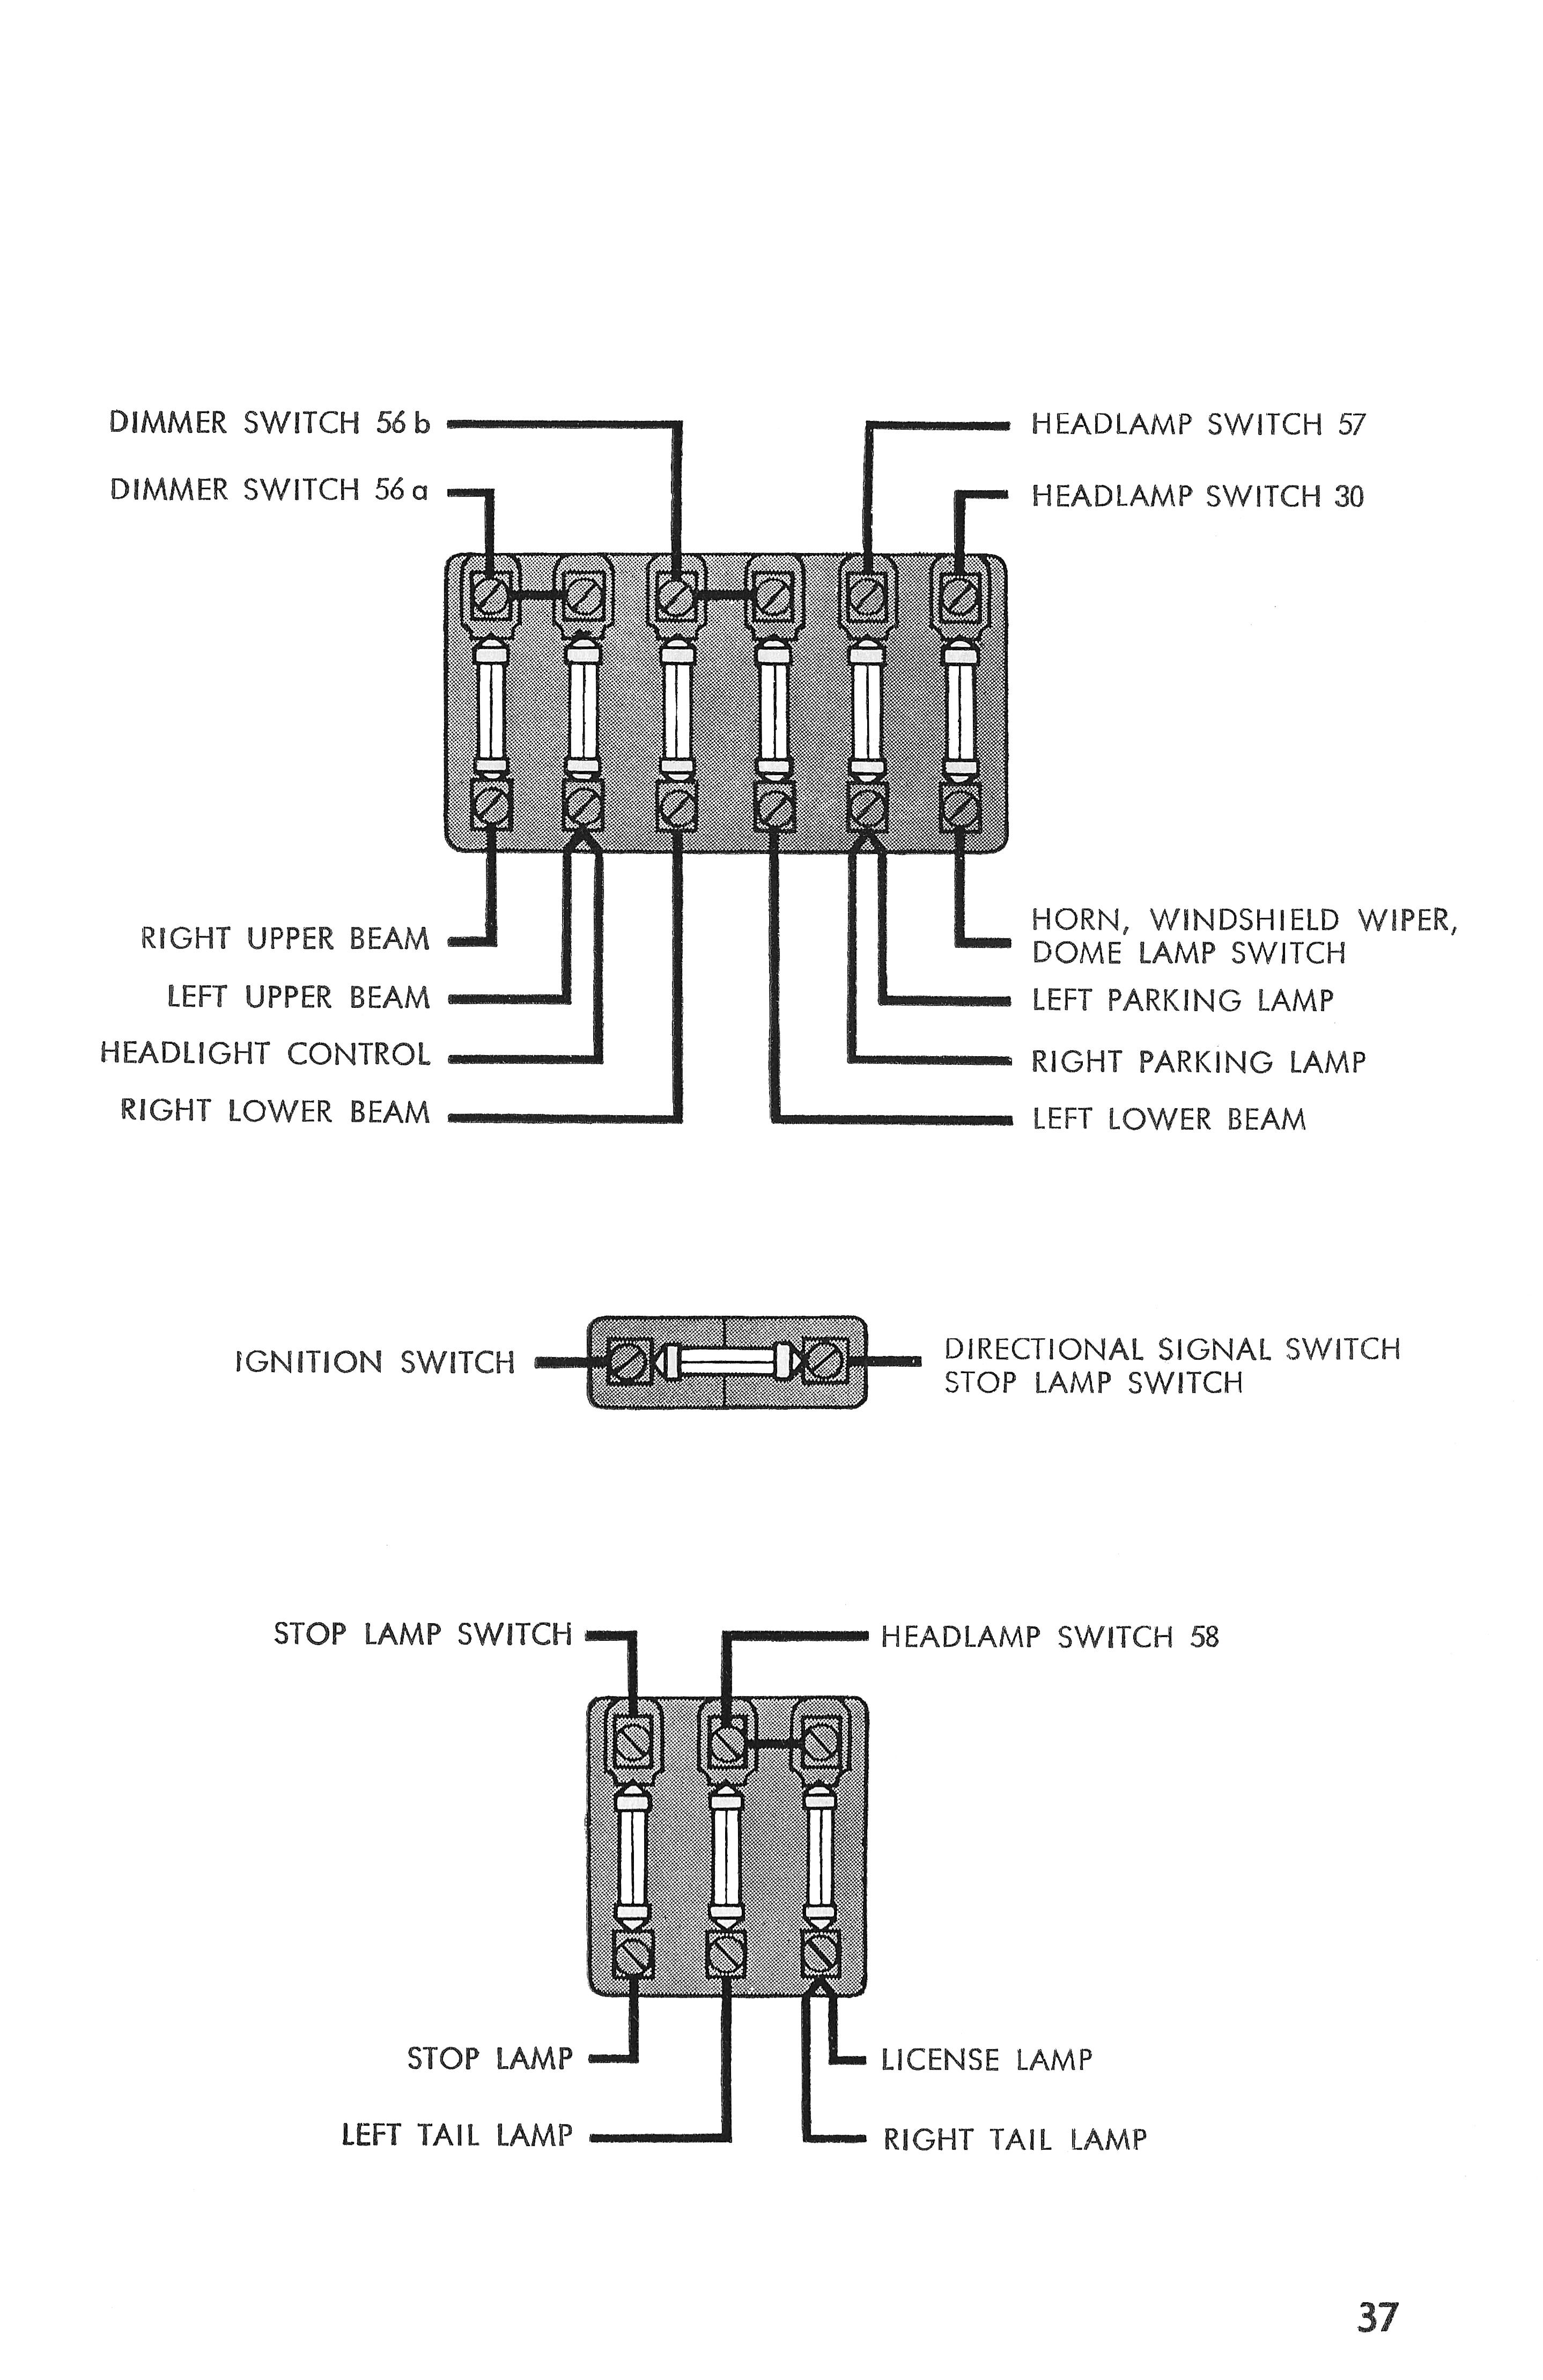 Image Result For Technical Diagram Dimmer Switch Volkswagen Car Diagram